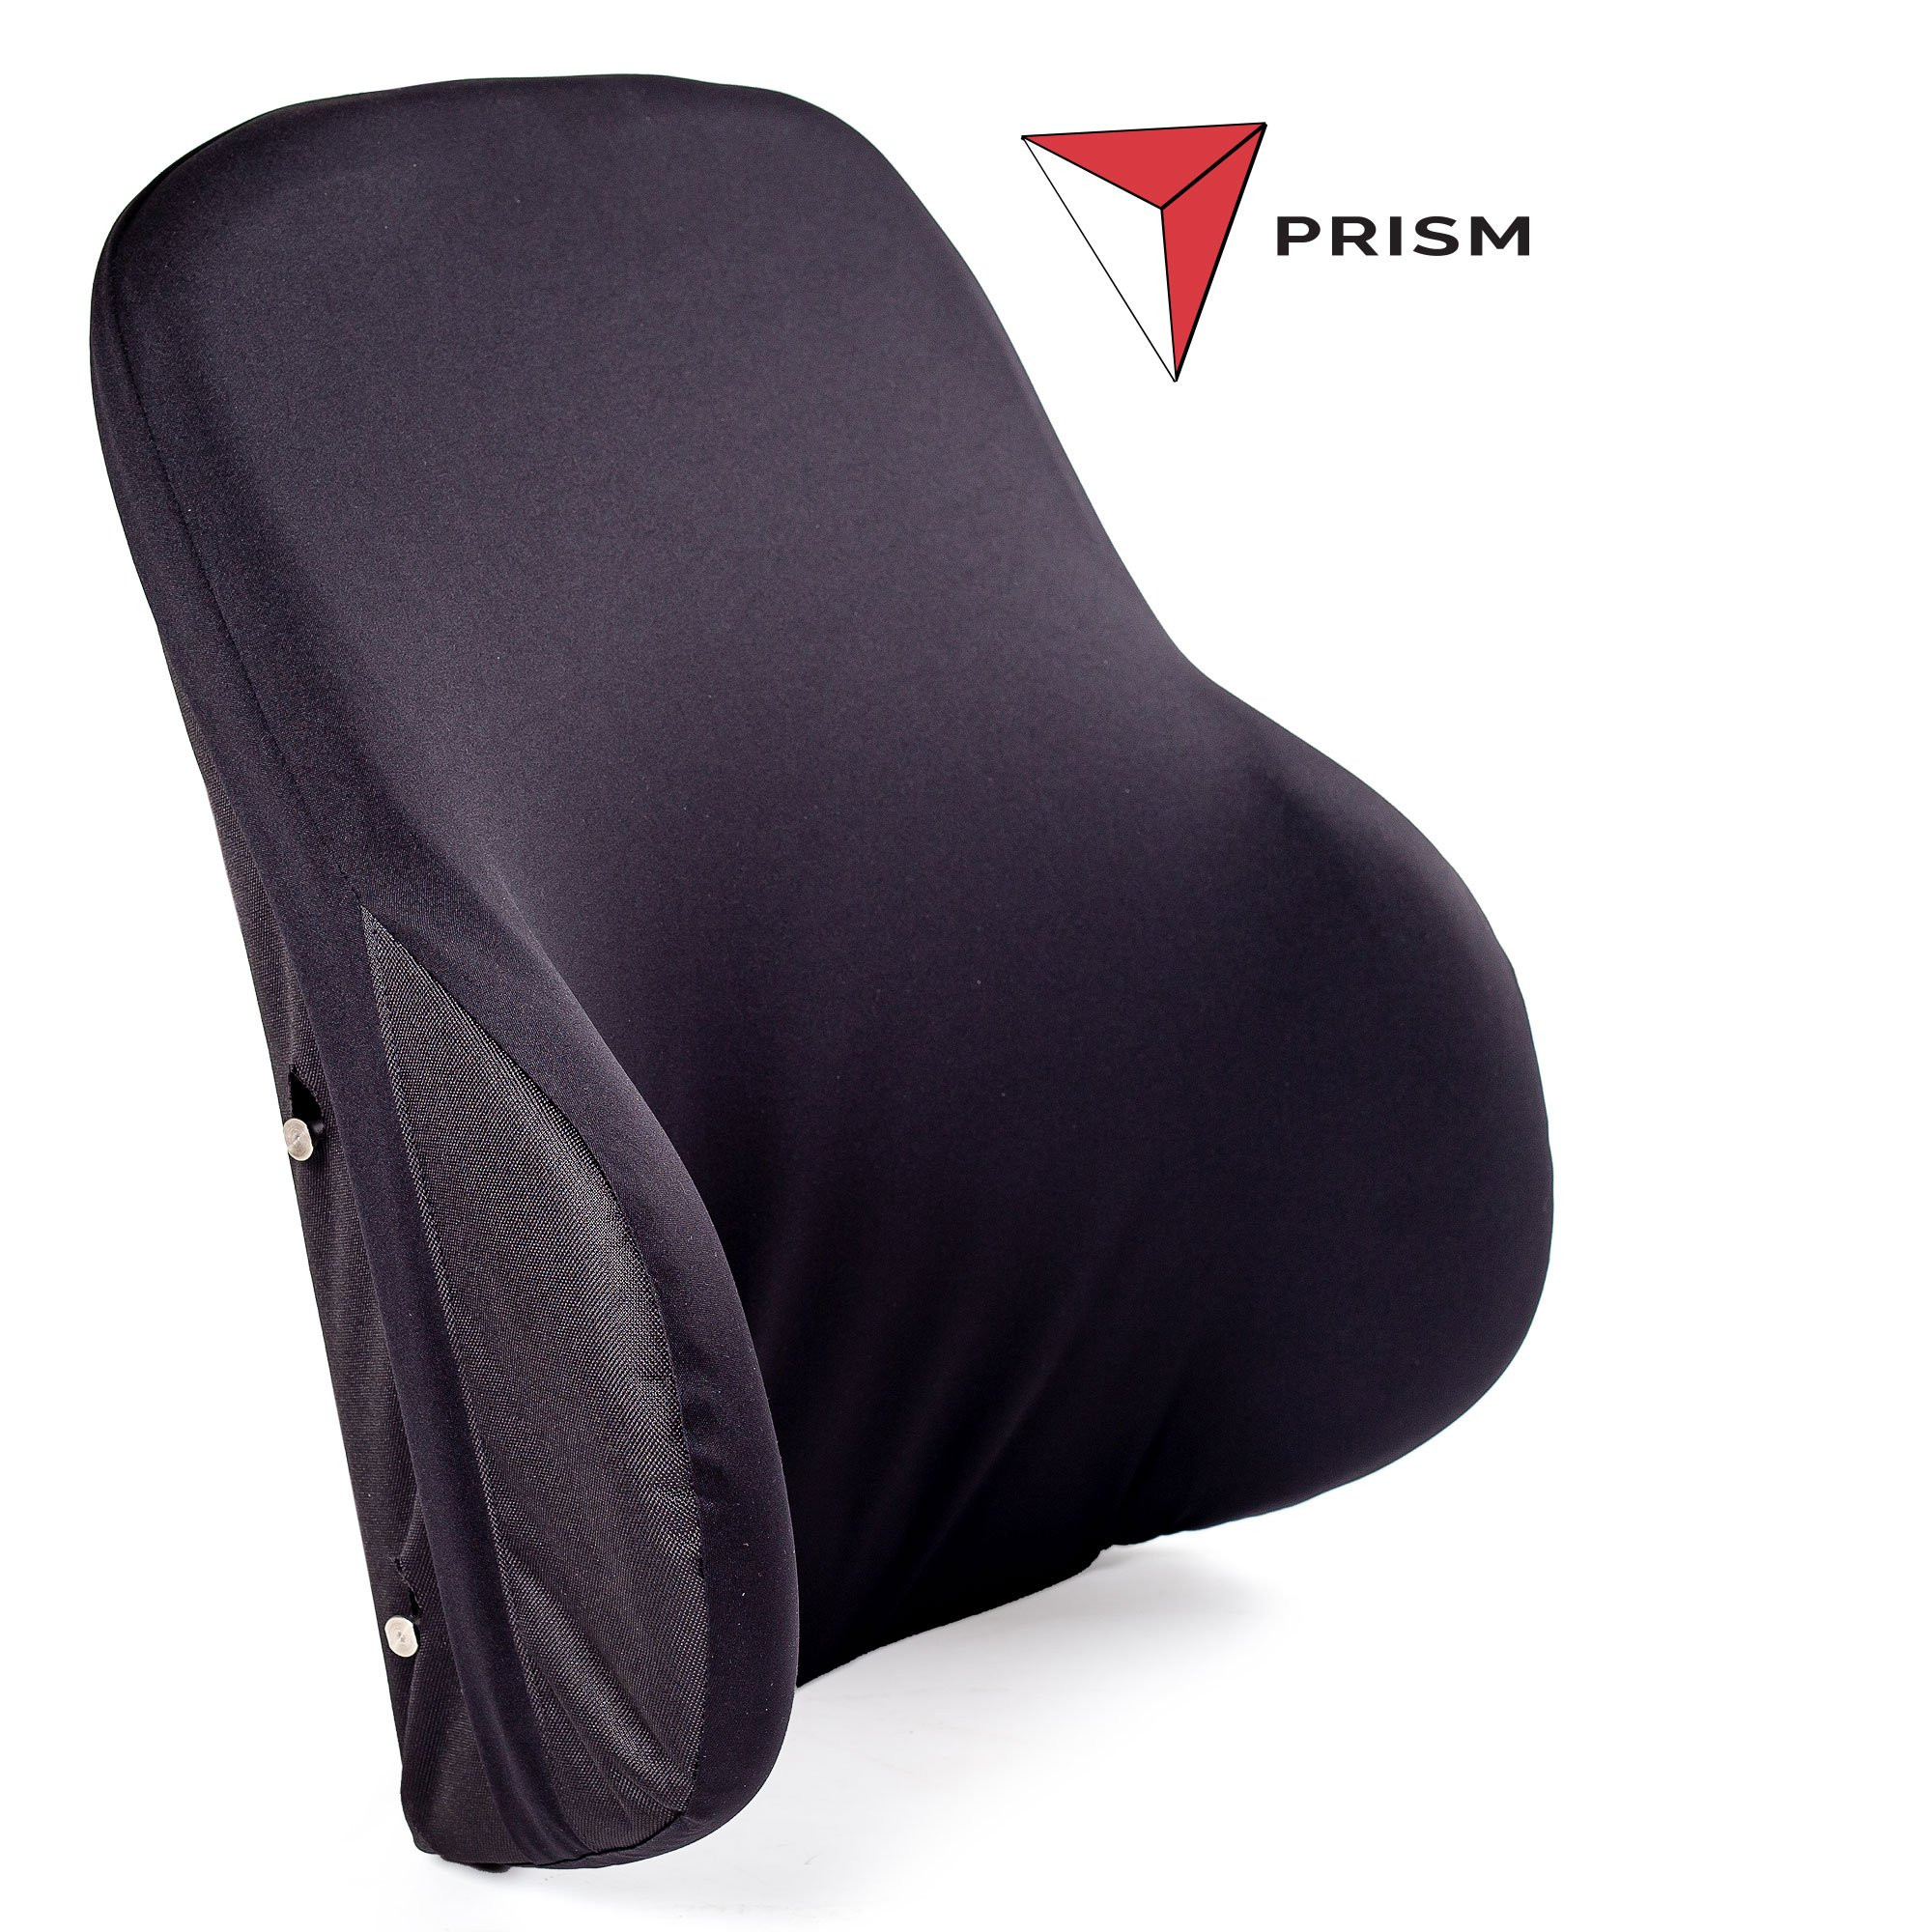 backrest wheelchair prism ultra